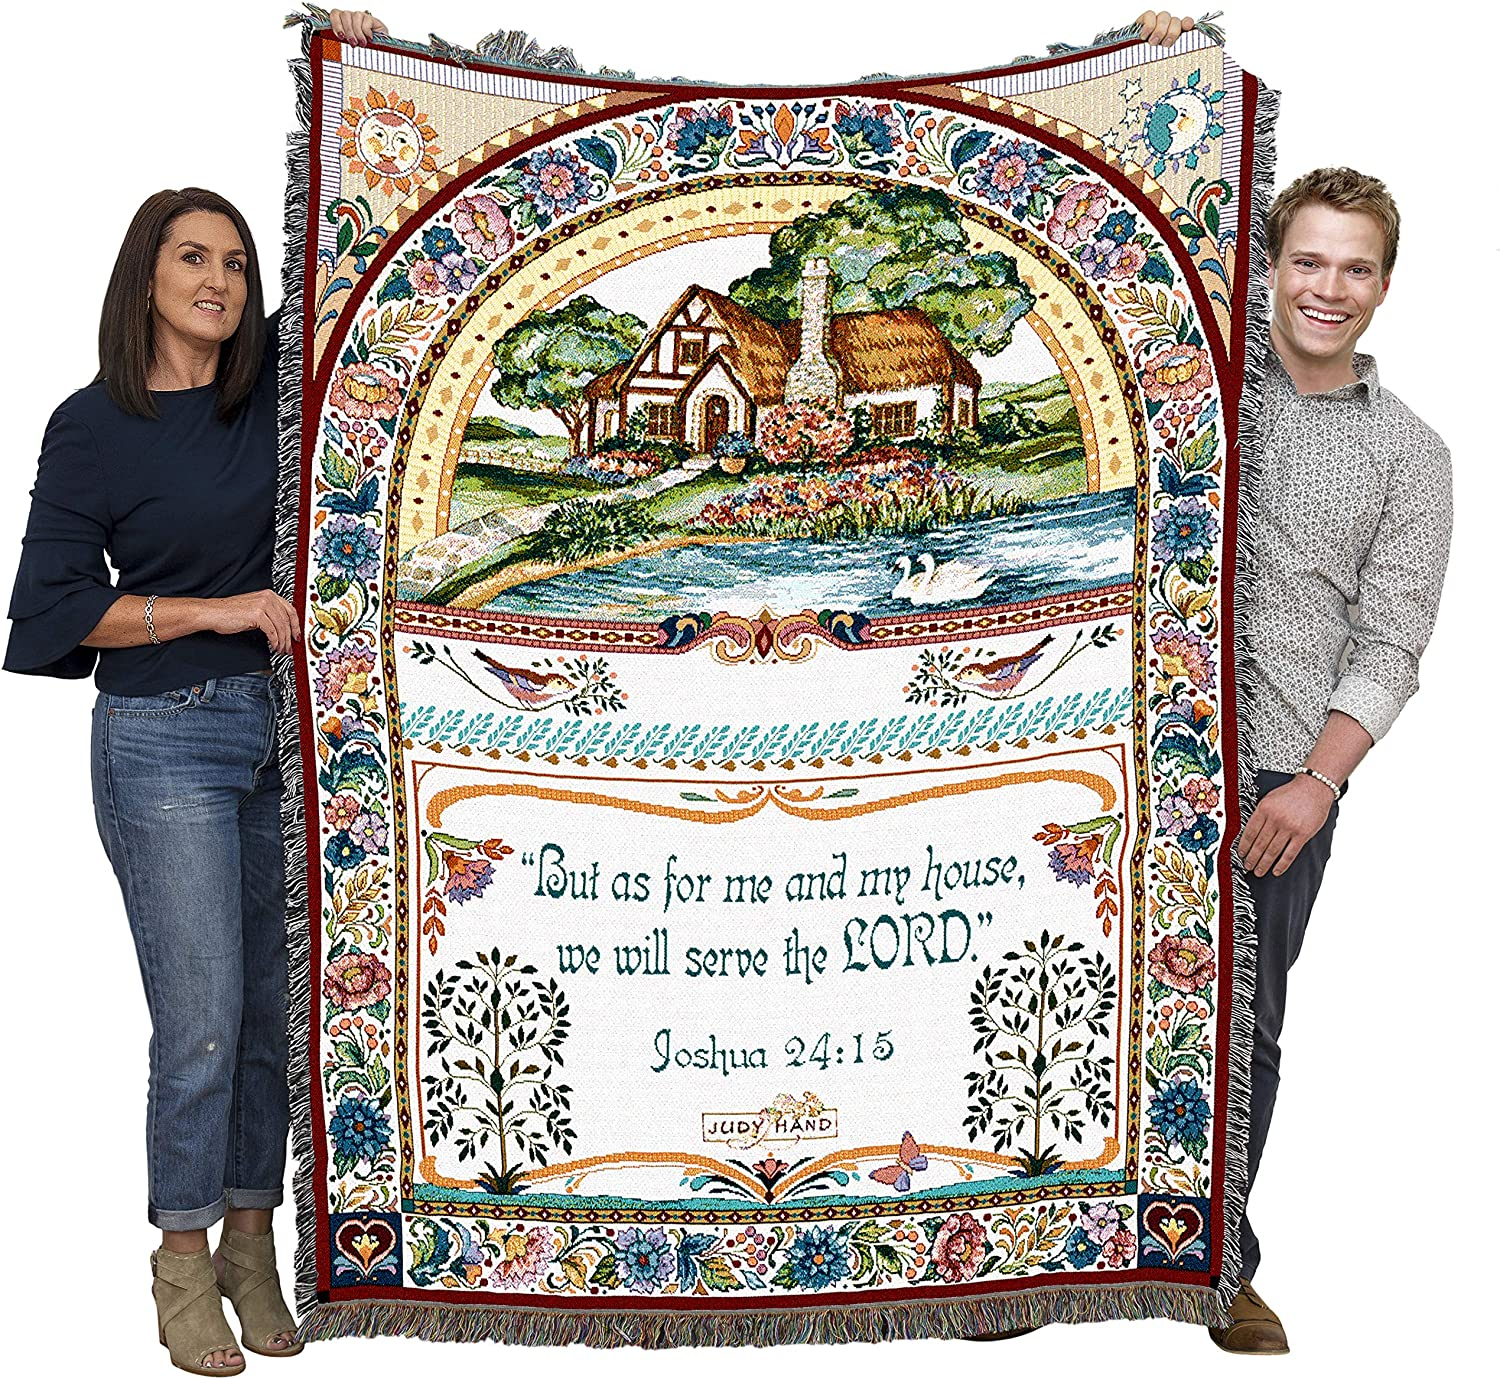 Pure Country Weavers Coastal Splendor with Scripture Woven Tapestry Throw Blanket with Fringe Cotton USA 72x54